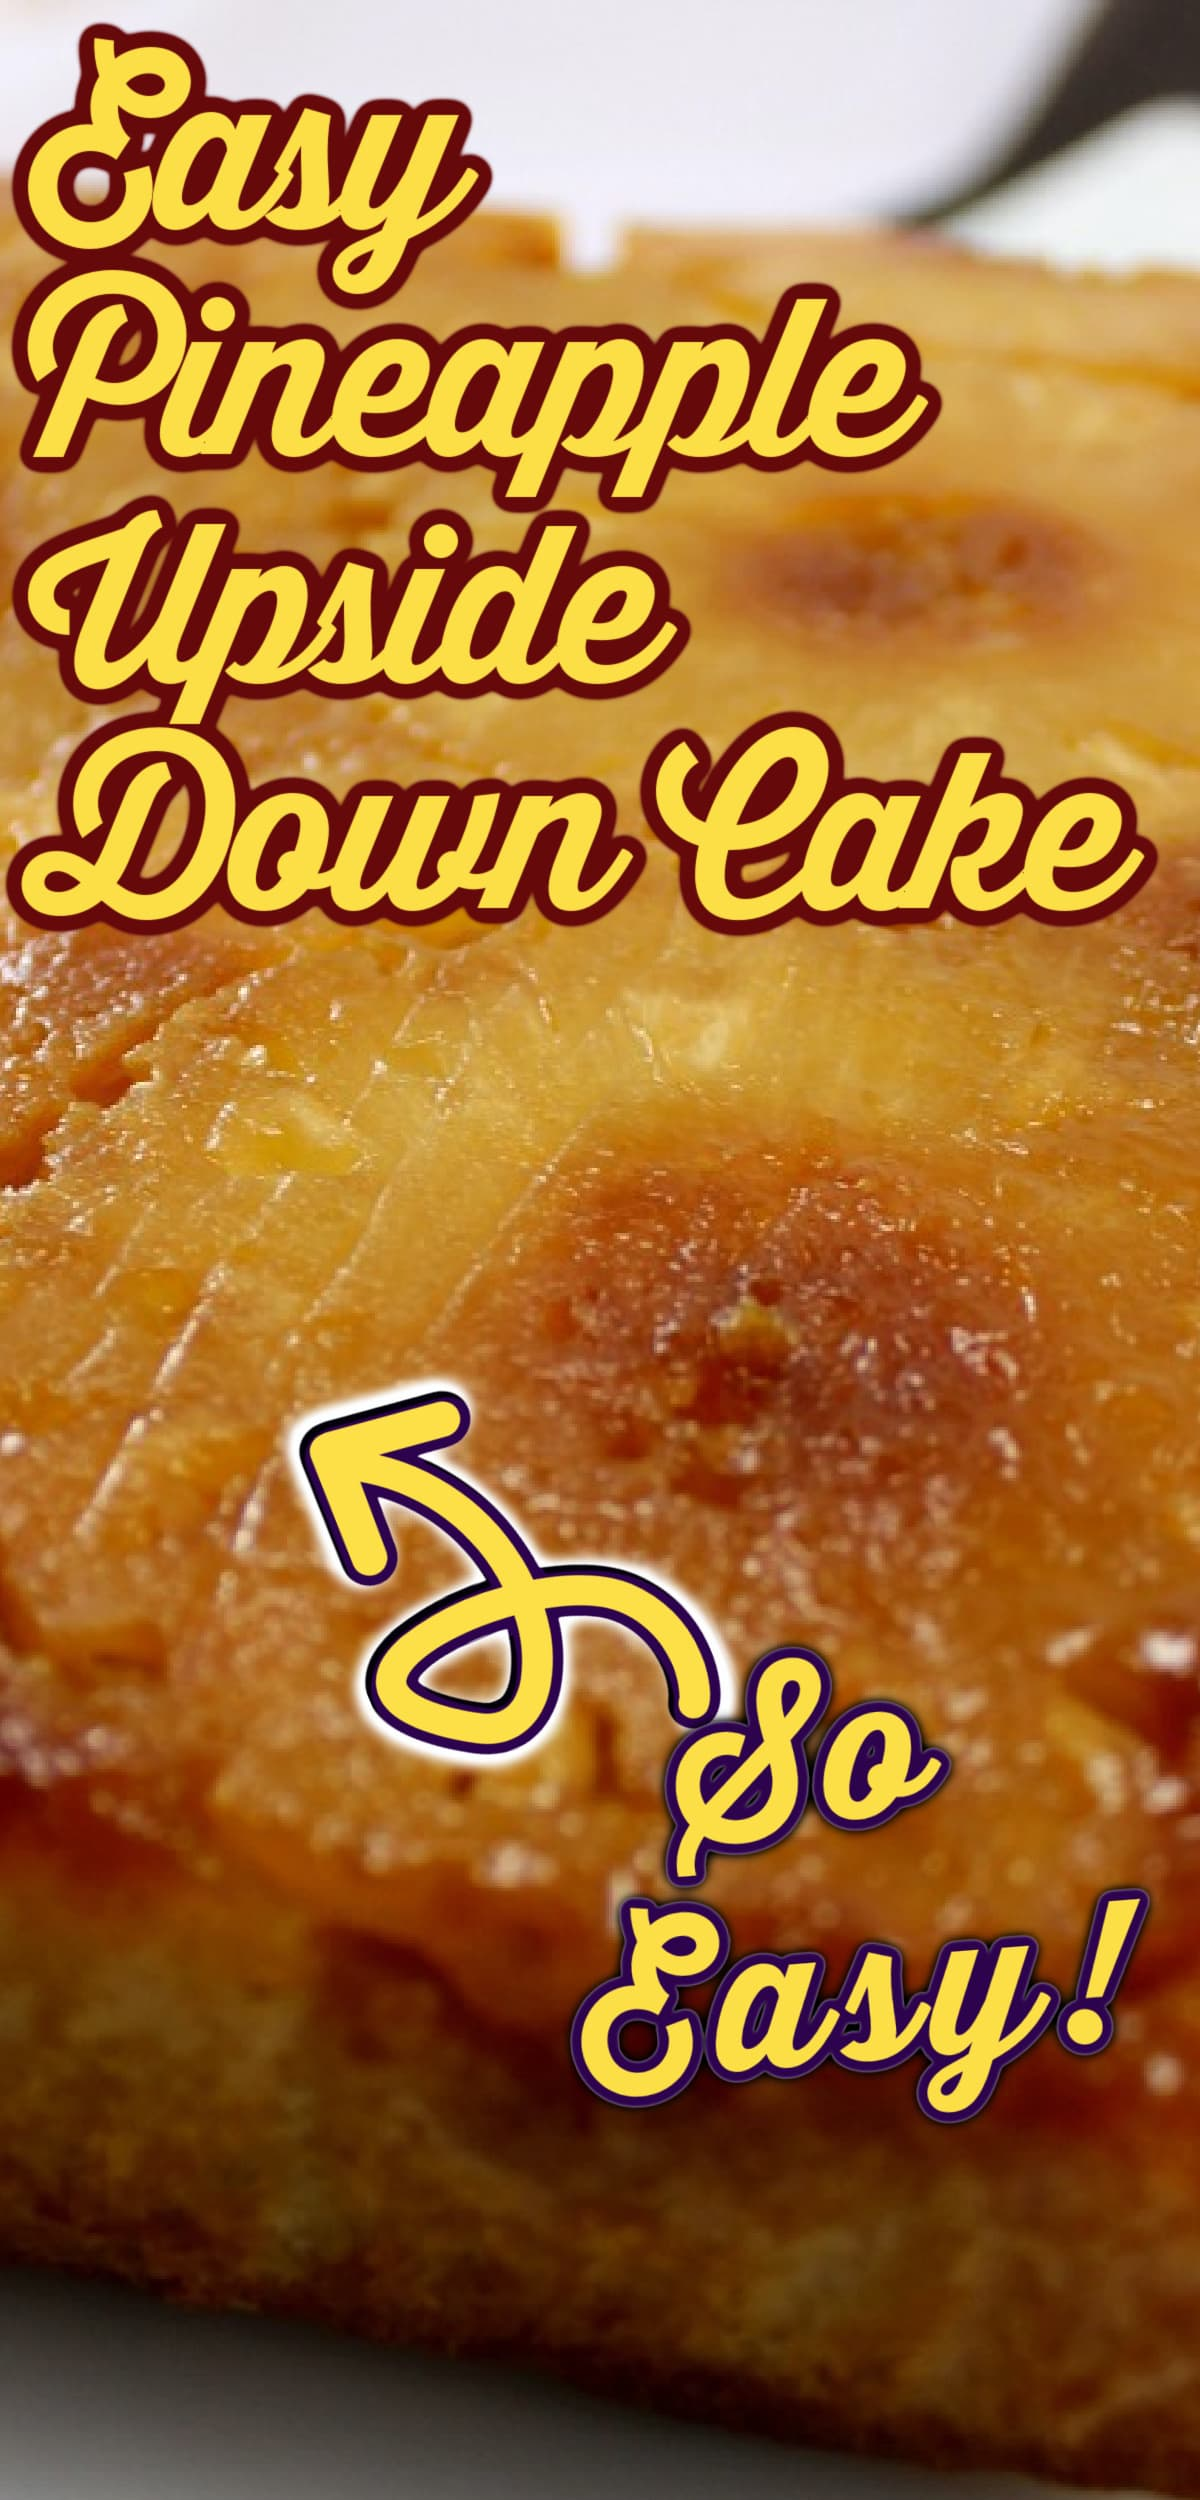 Easy Pineapple Upside Down Cake. Easy, made from scratch recipe. Soft and moist, bursting with pineapple flavor. Fuss free recipe using regular ingredients, options for low sugar too